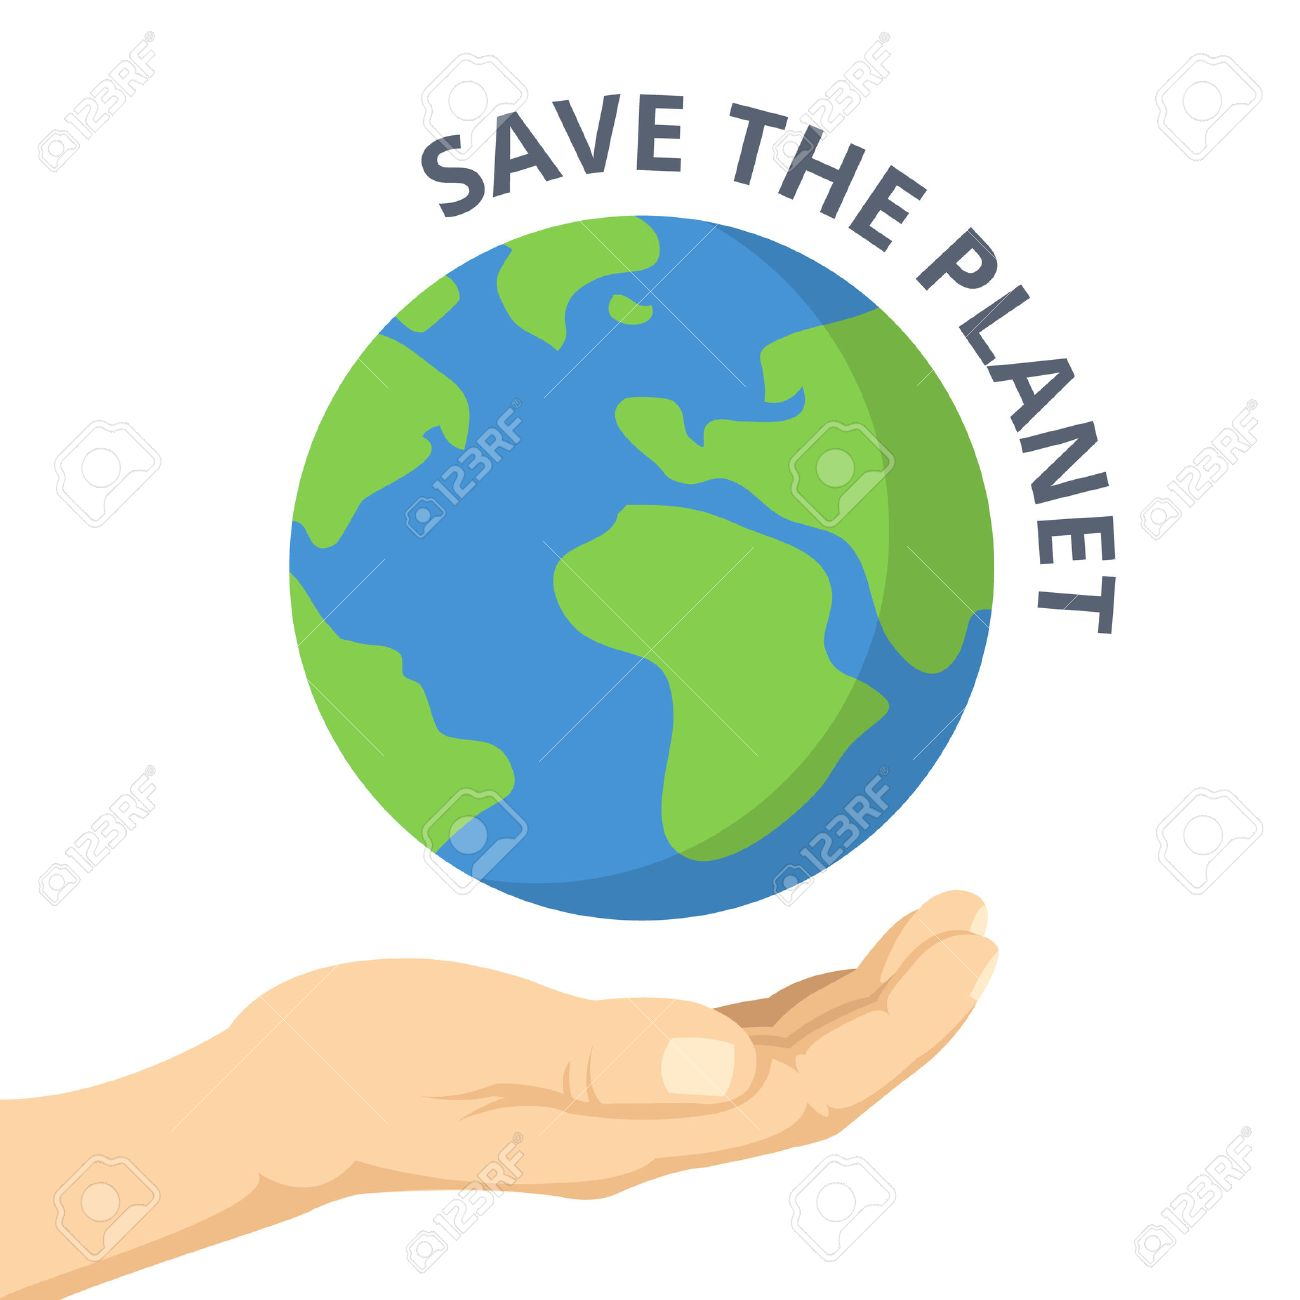 save the planet hand palm and earth vector flat illustration rh 123rf com earth vector free earth vector images free